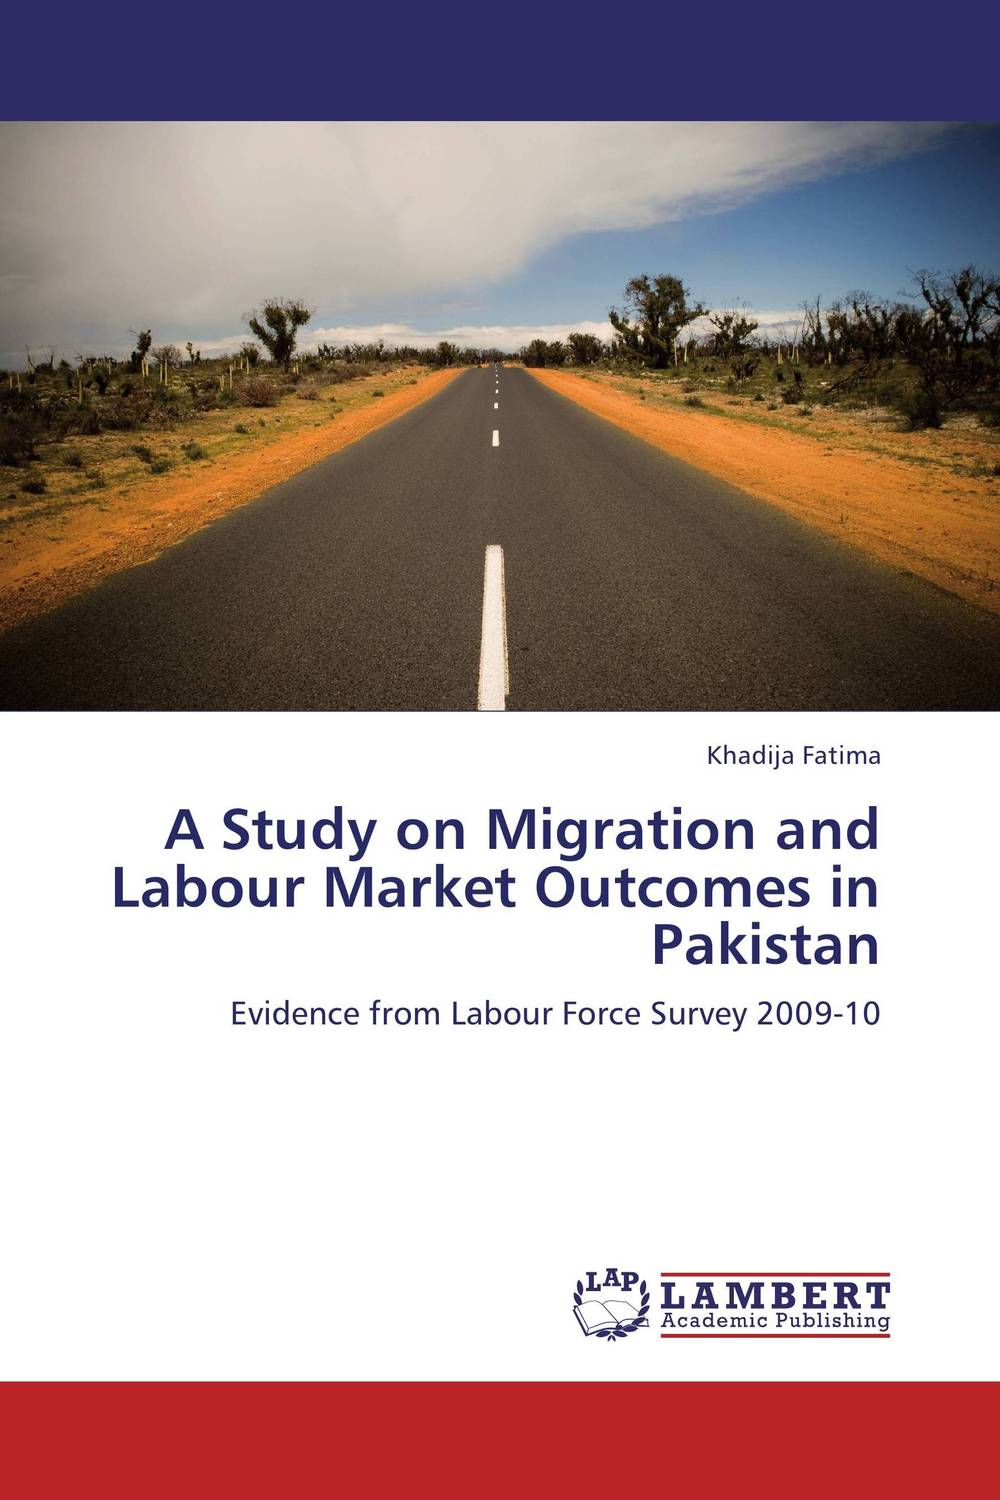 A Study on Migration and Labour Market Outcomes in Pakistan